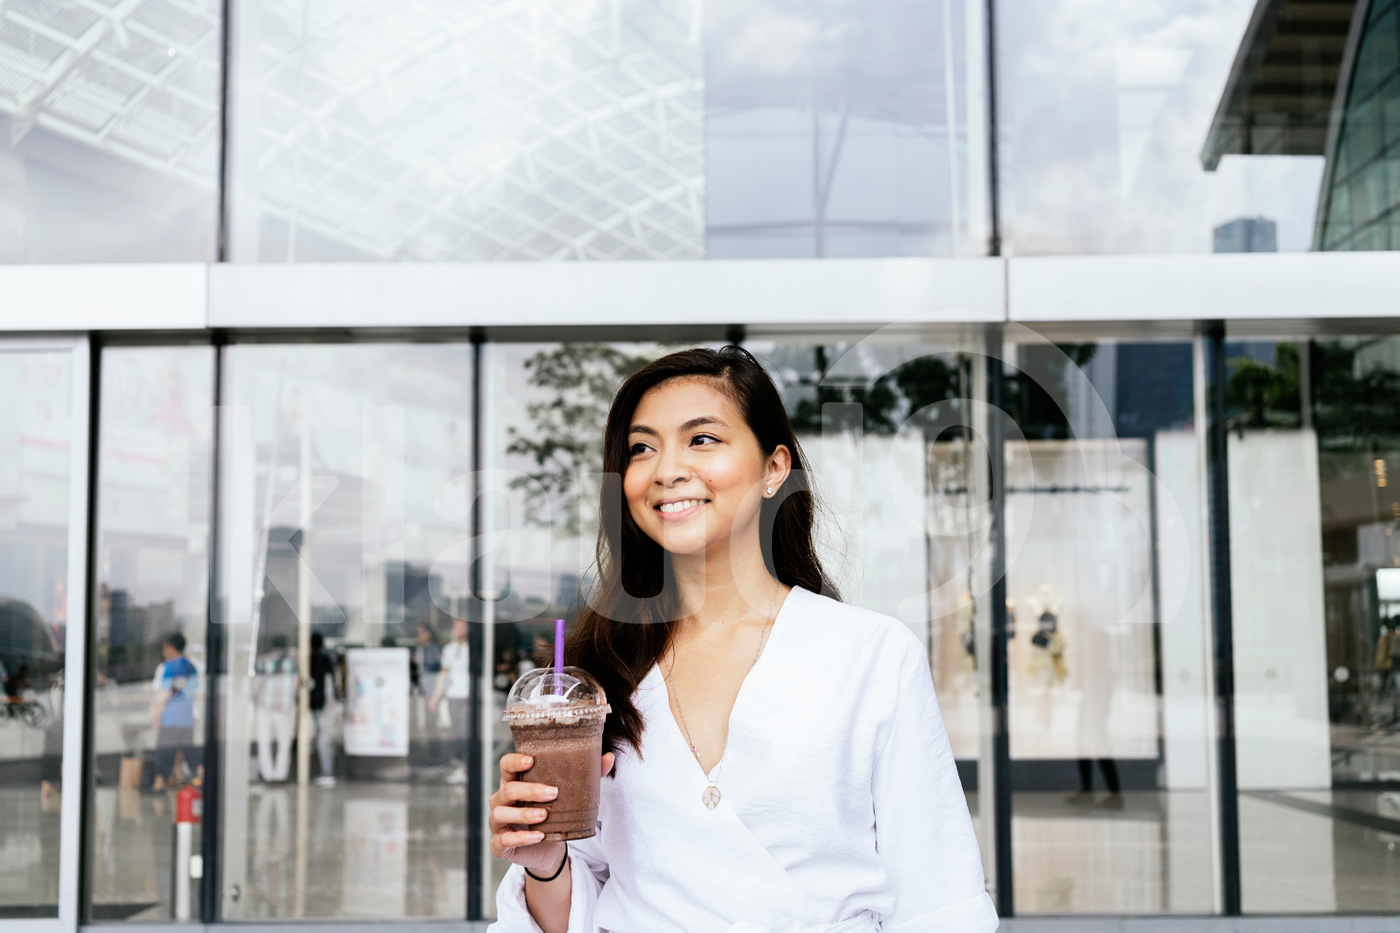 Young adult Asian woman standing in the mall holding drink cup